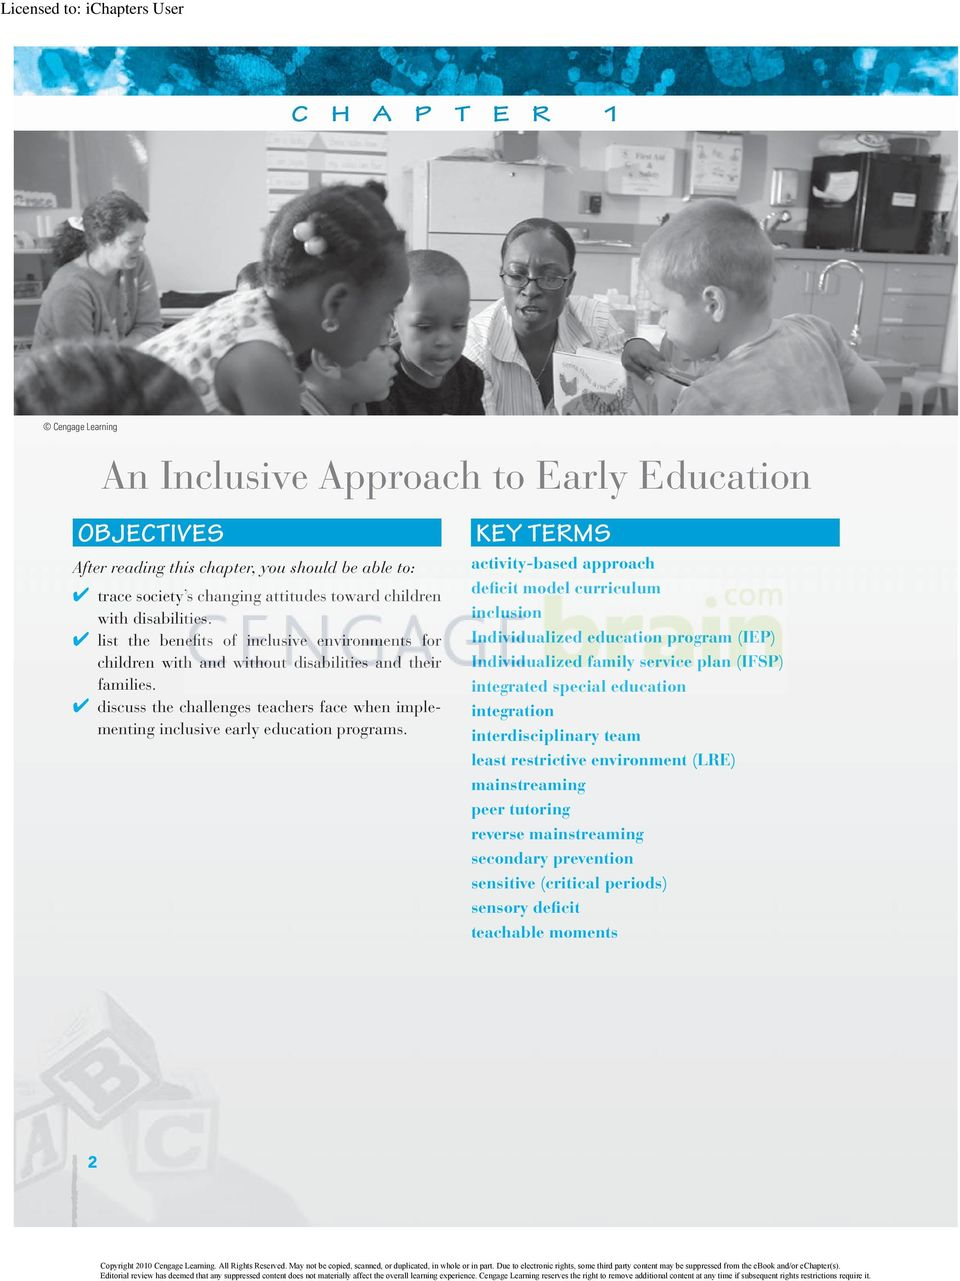 discuss the challenges teachers face when implementing inclusive early education programs.